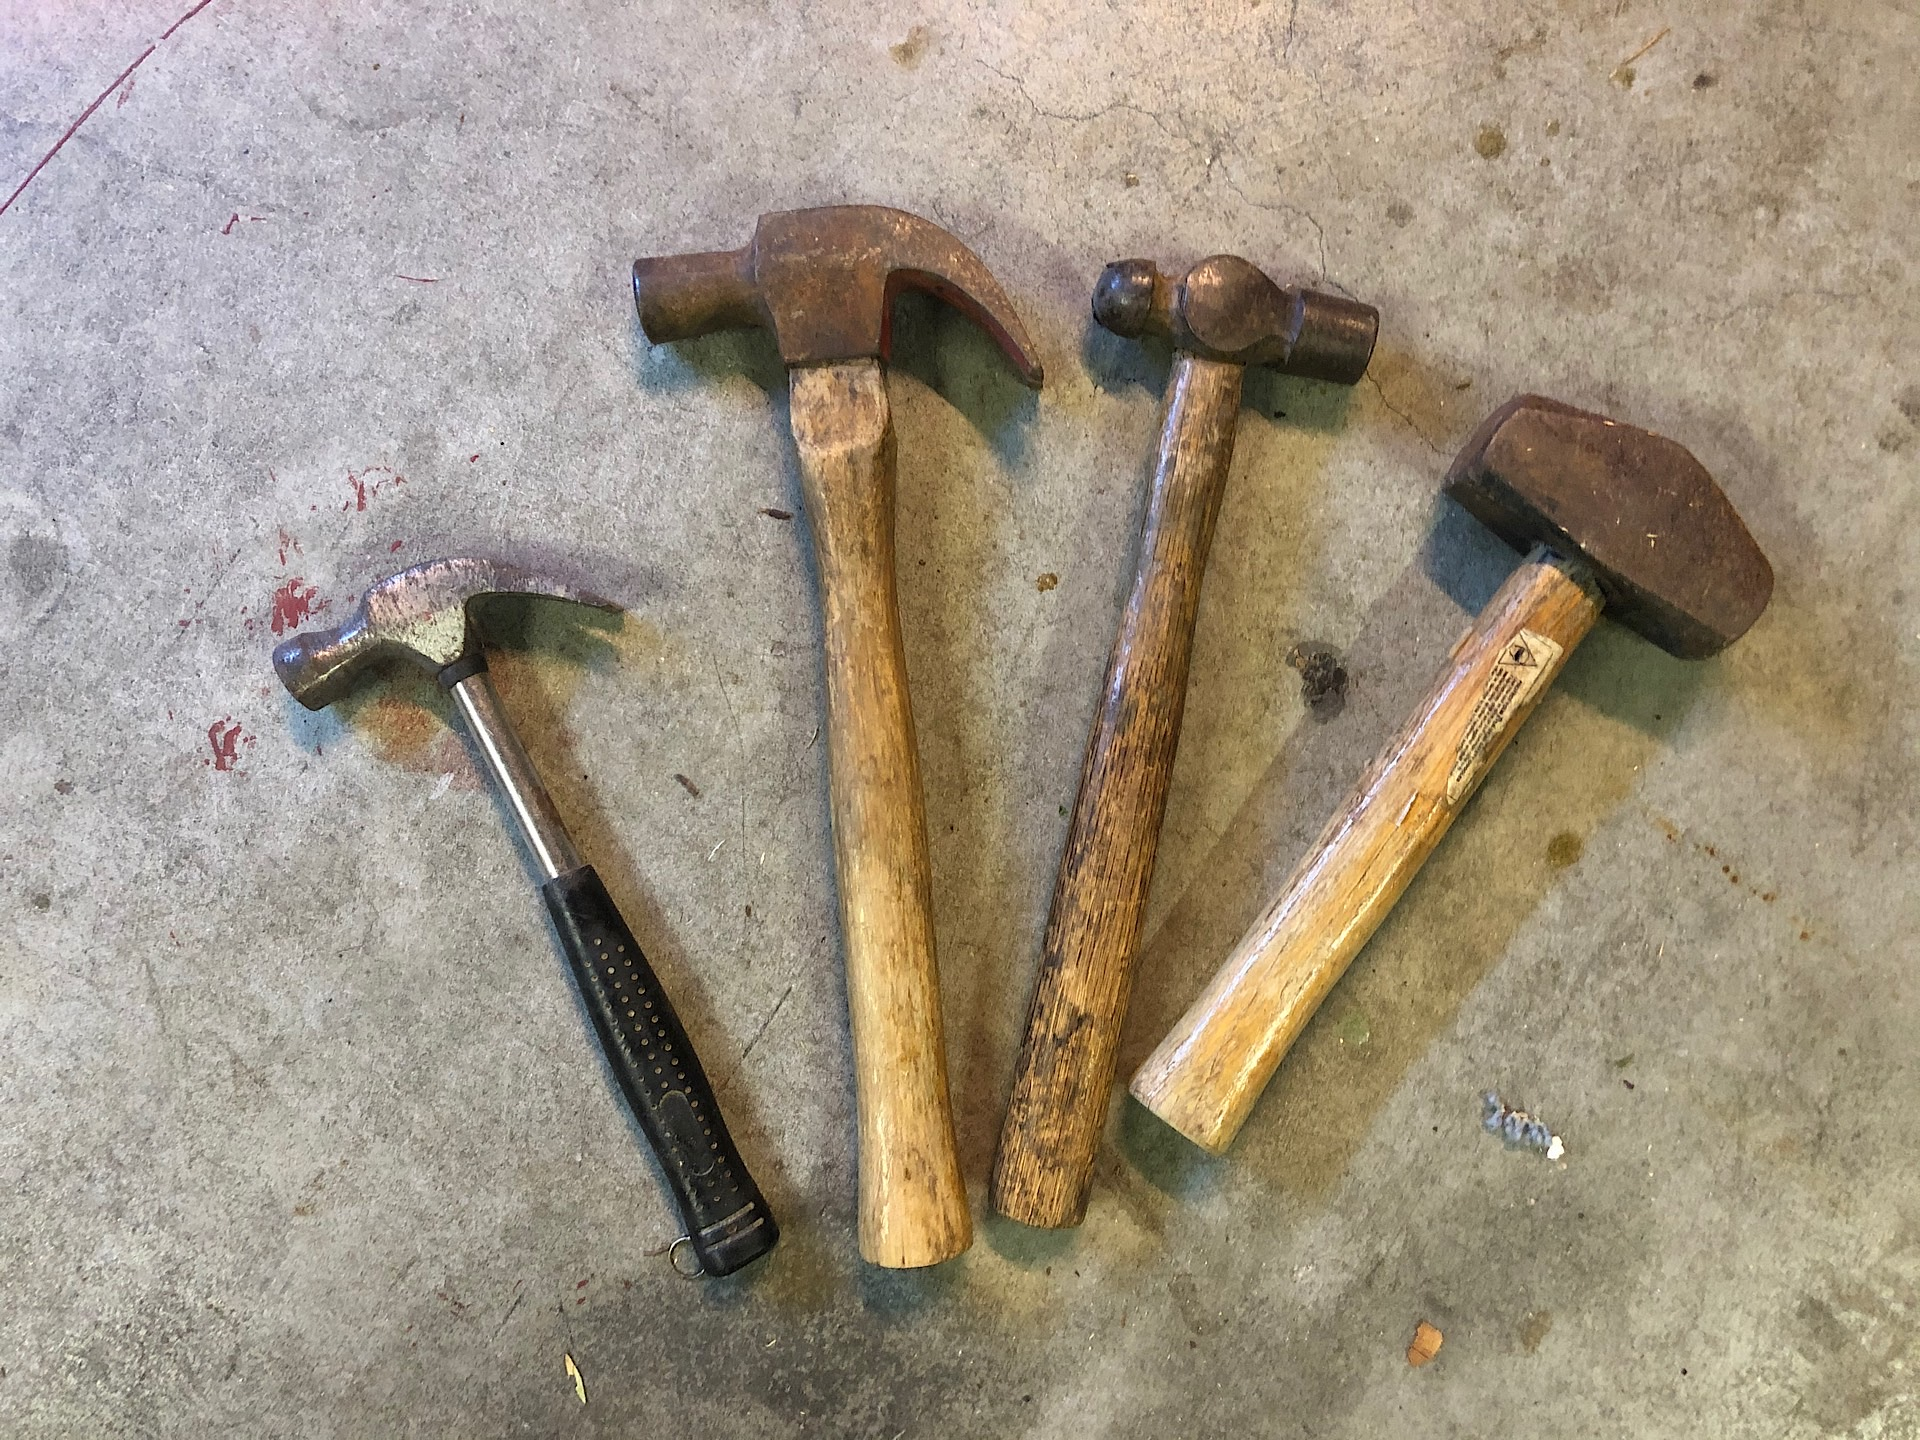 Some of my hammers